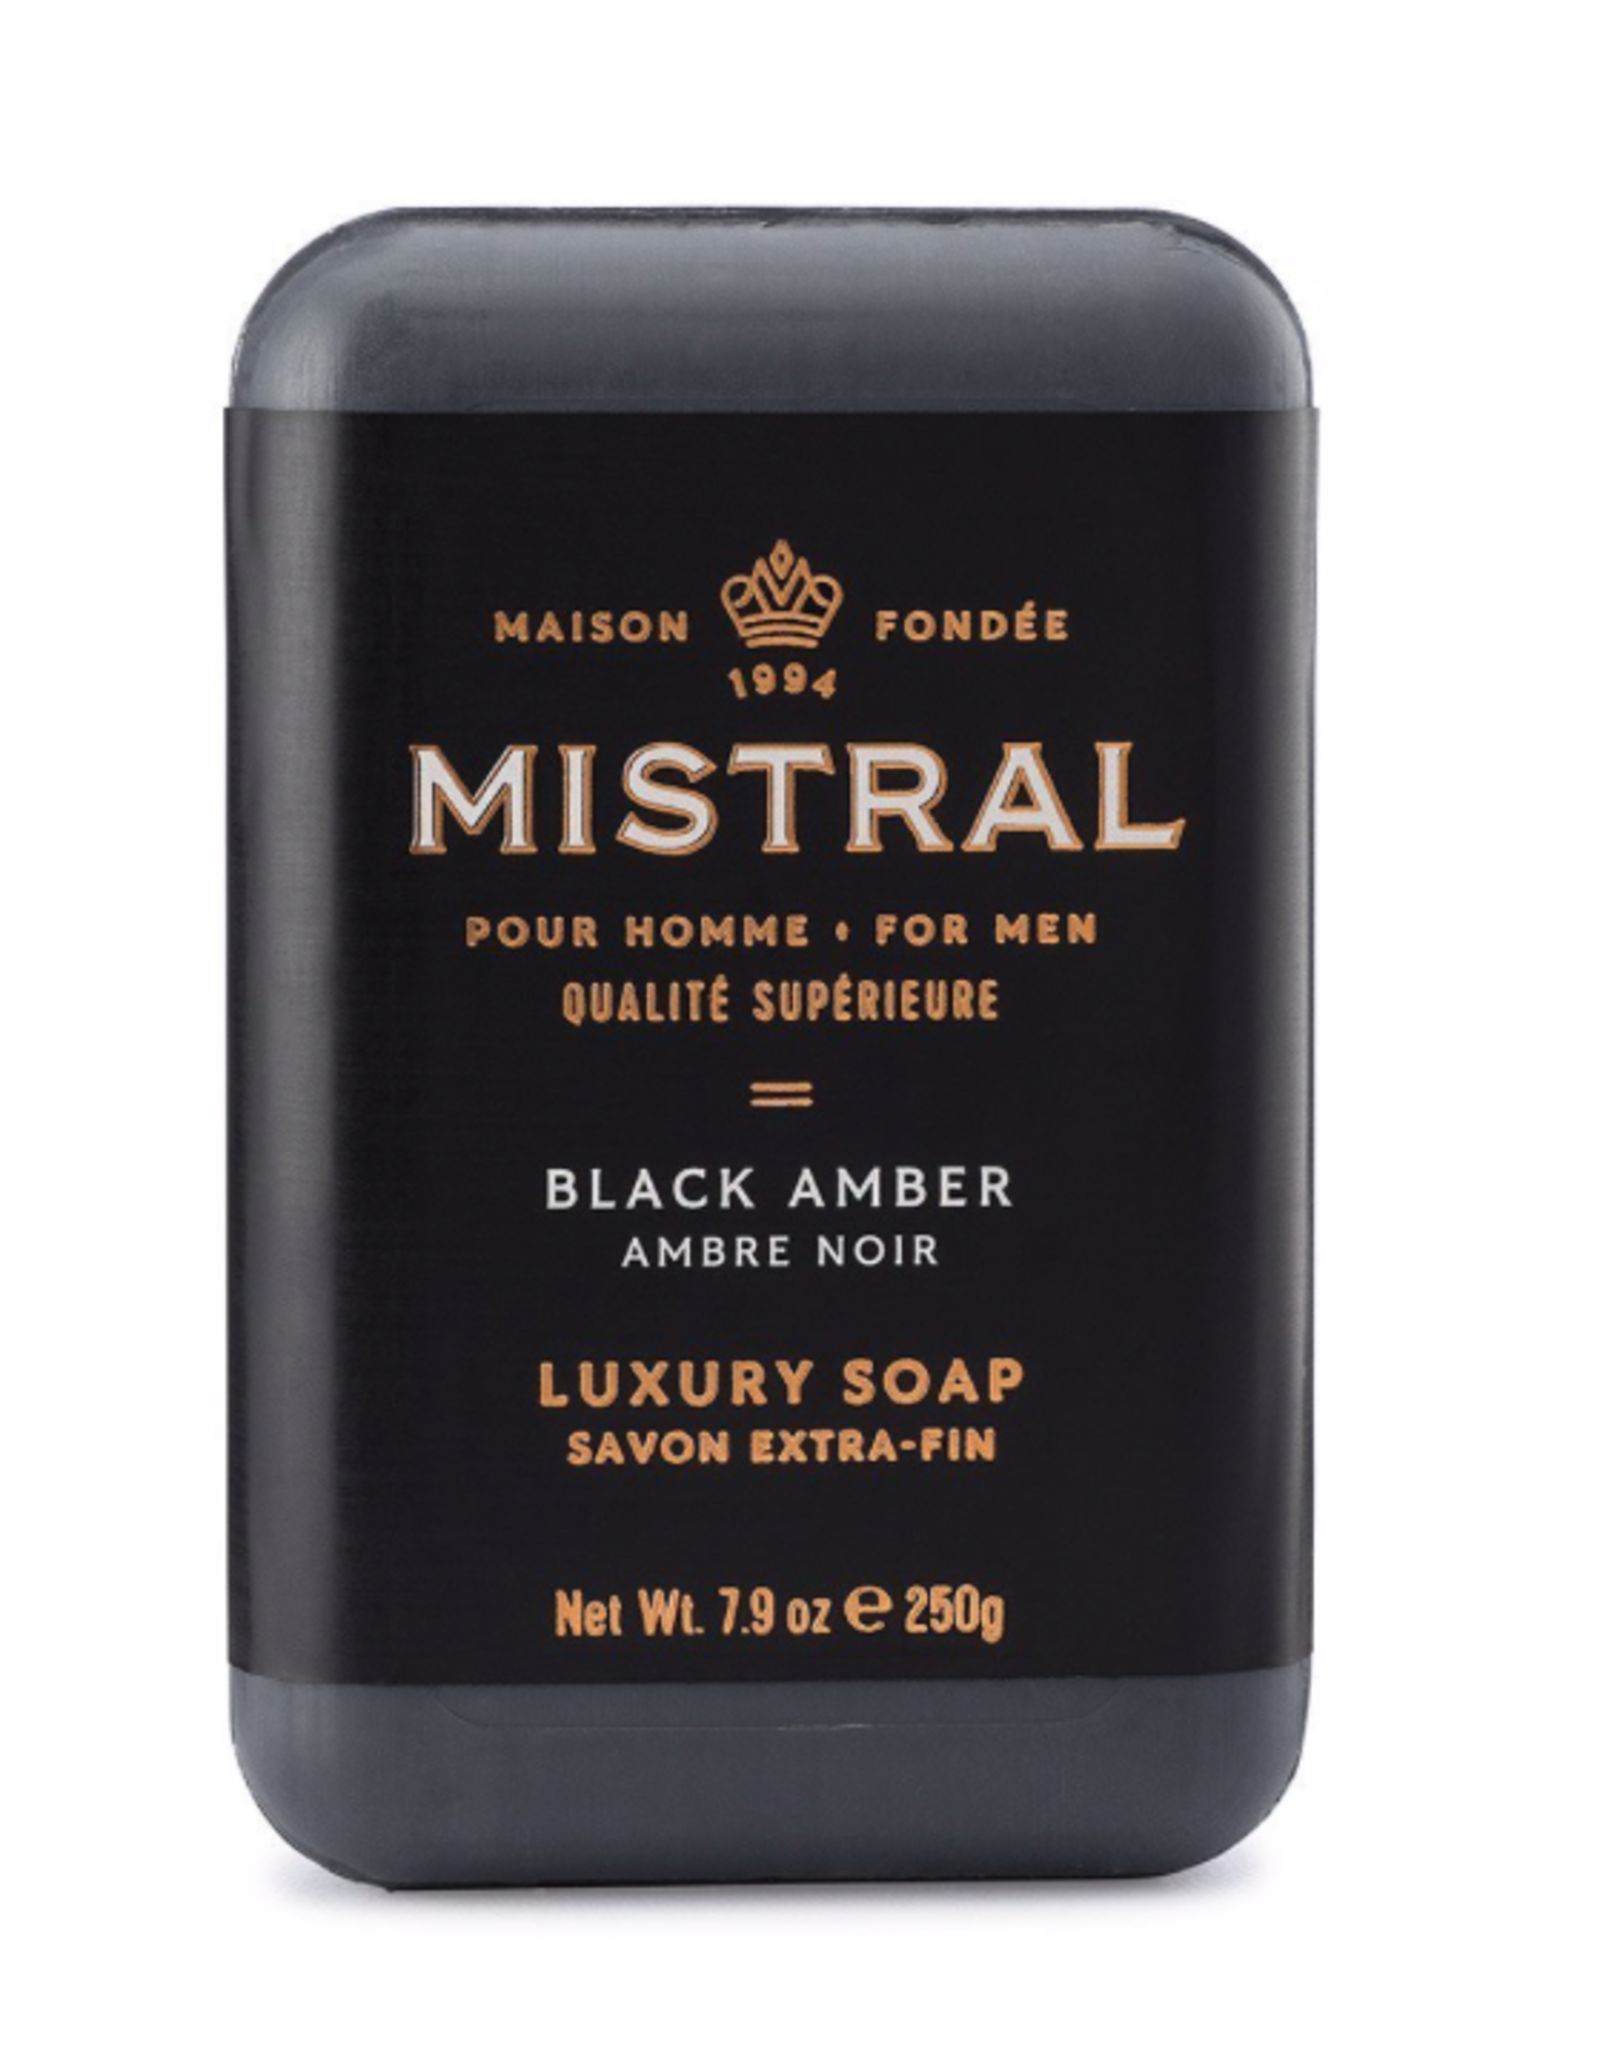 Mistral Black Amber Soap 8.8oz